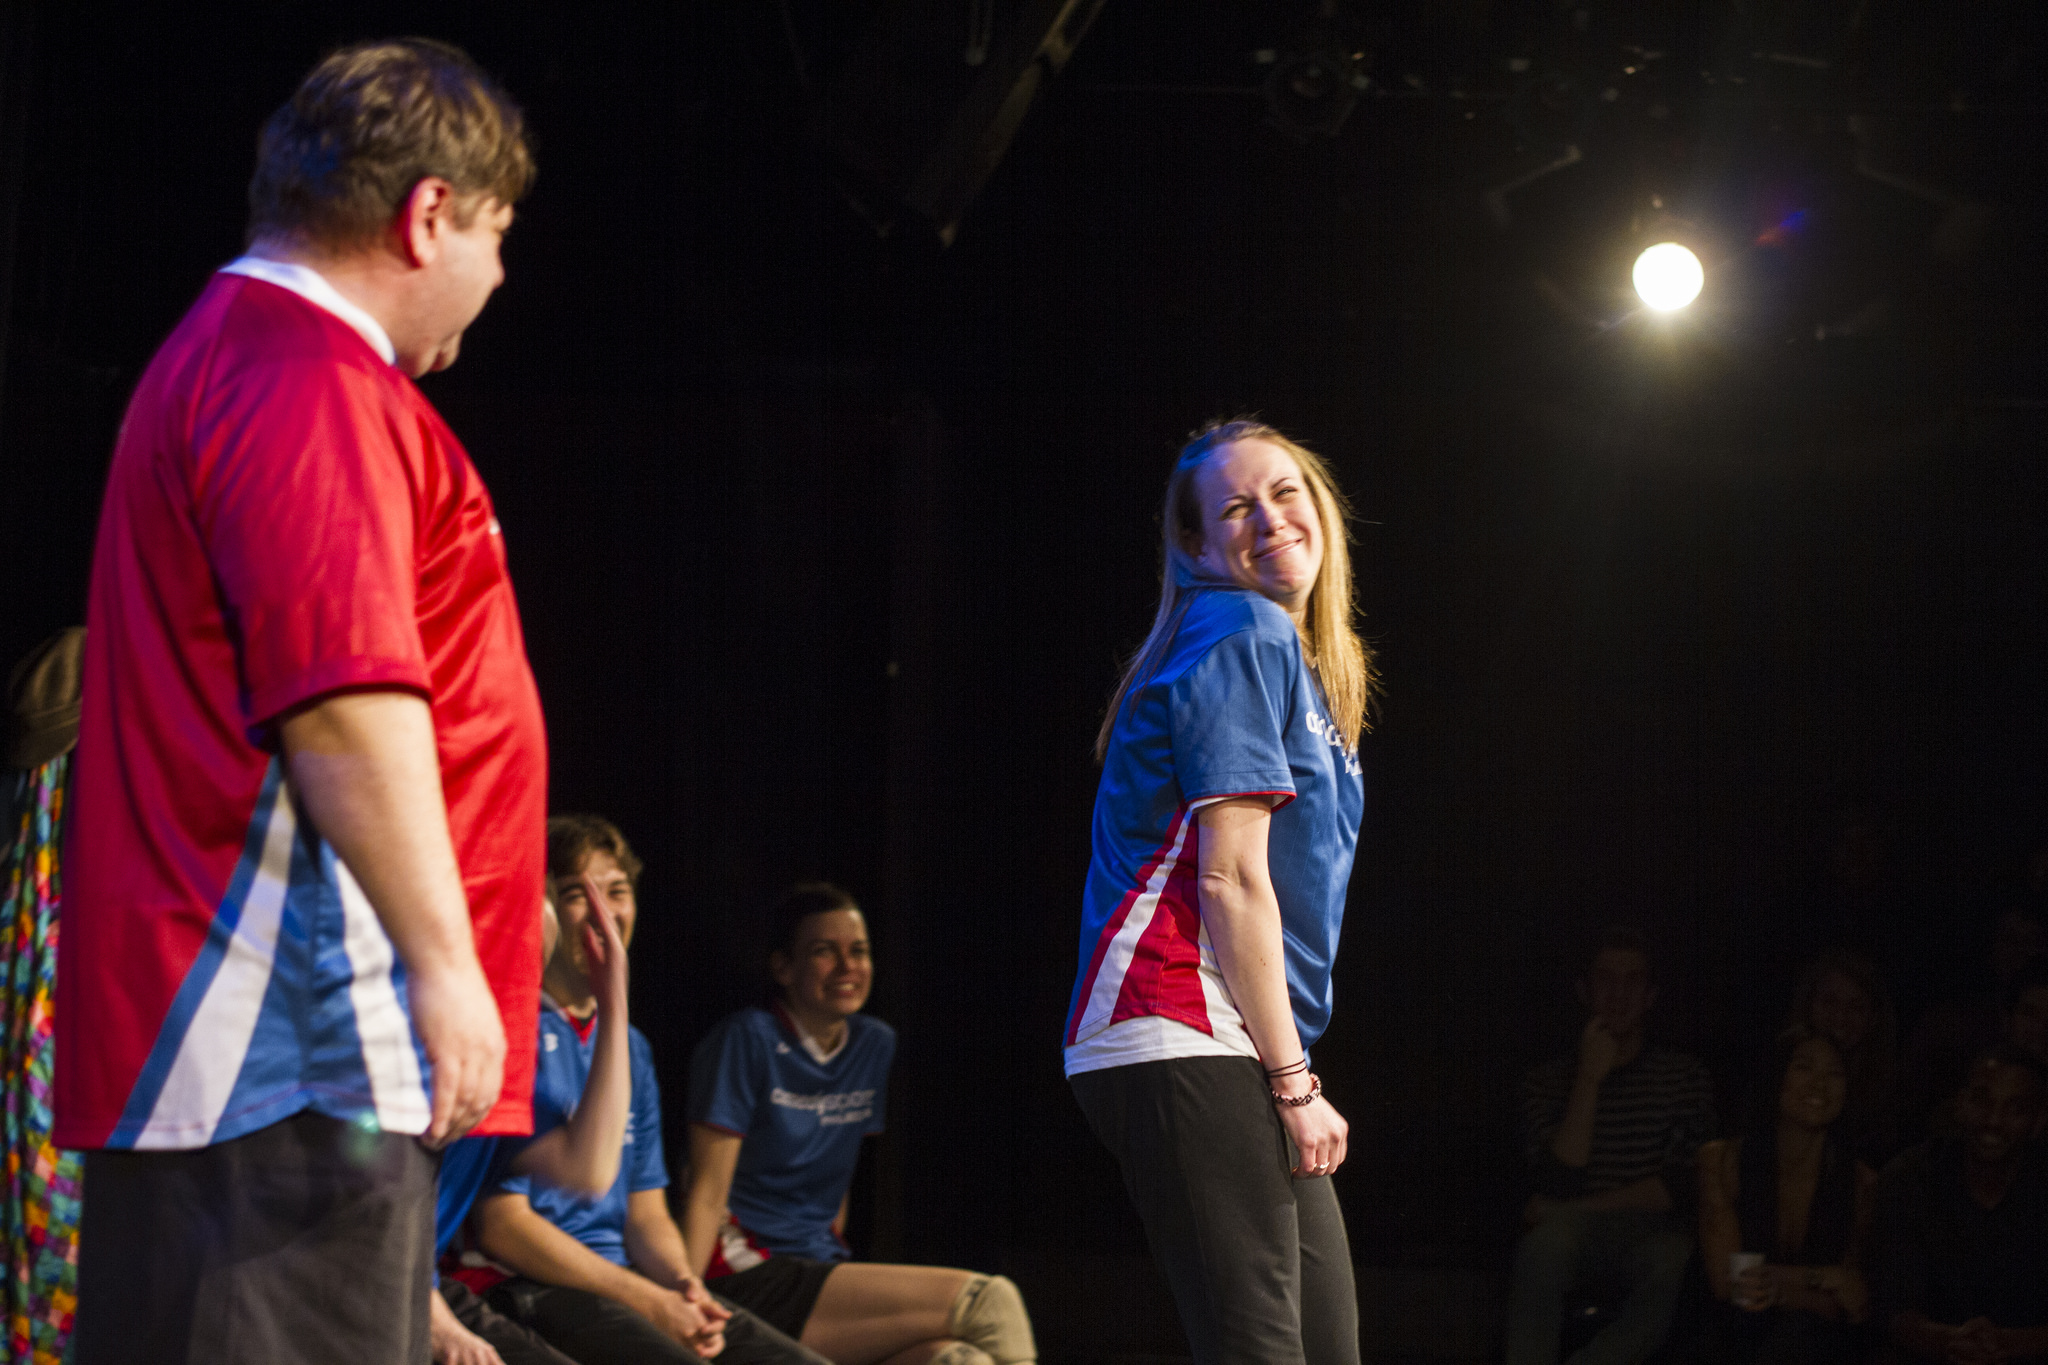 ComedySportz Players at The Love Show